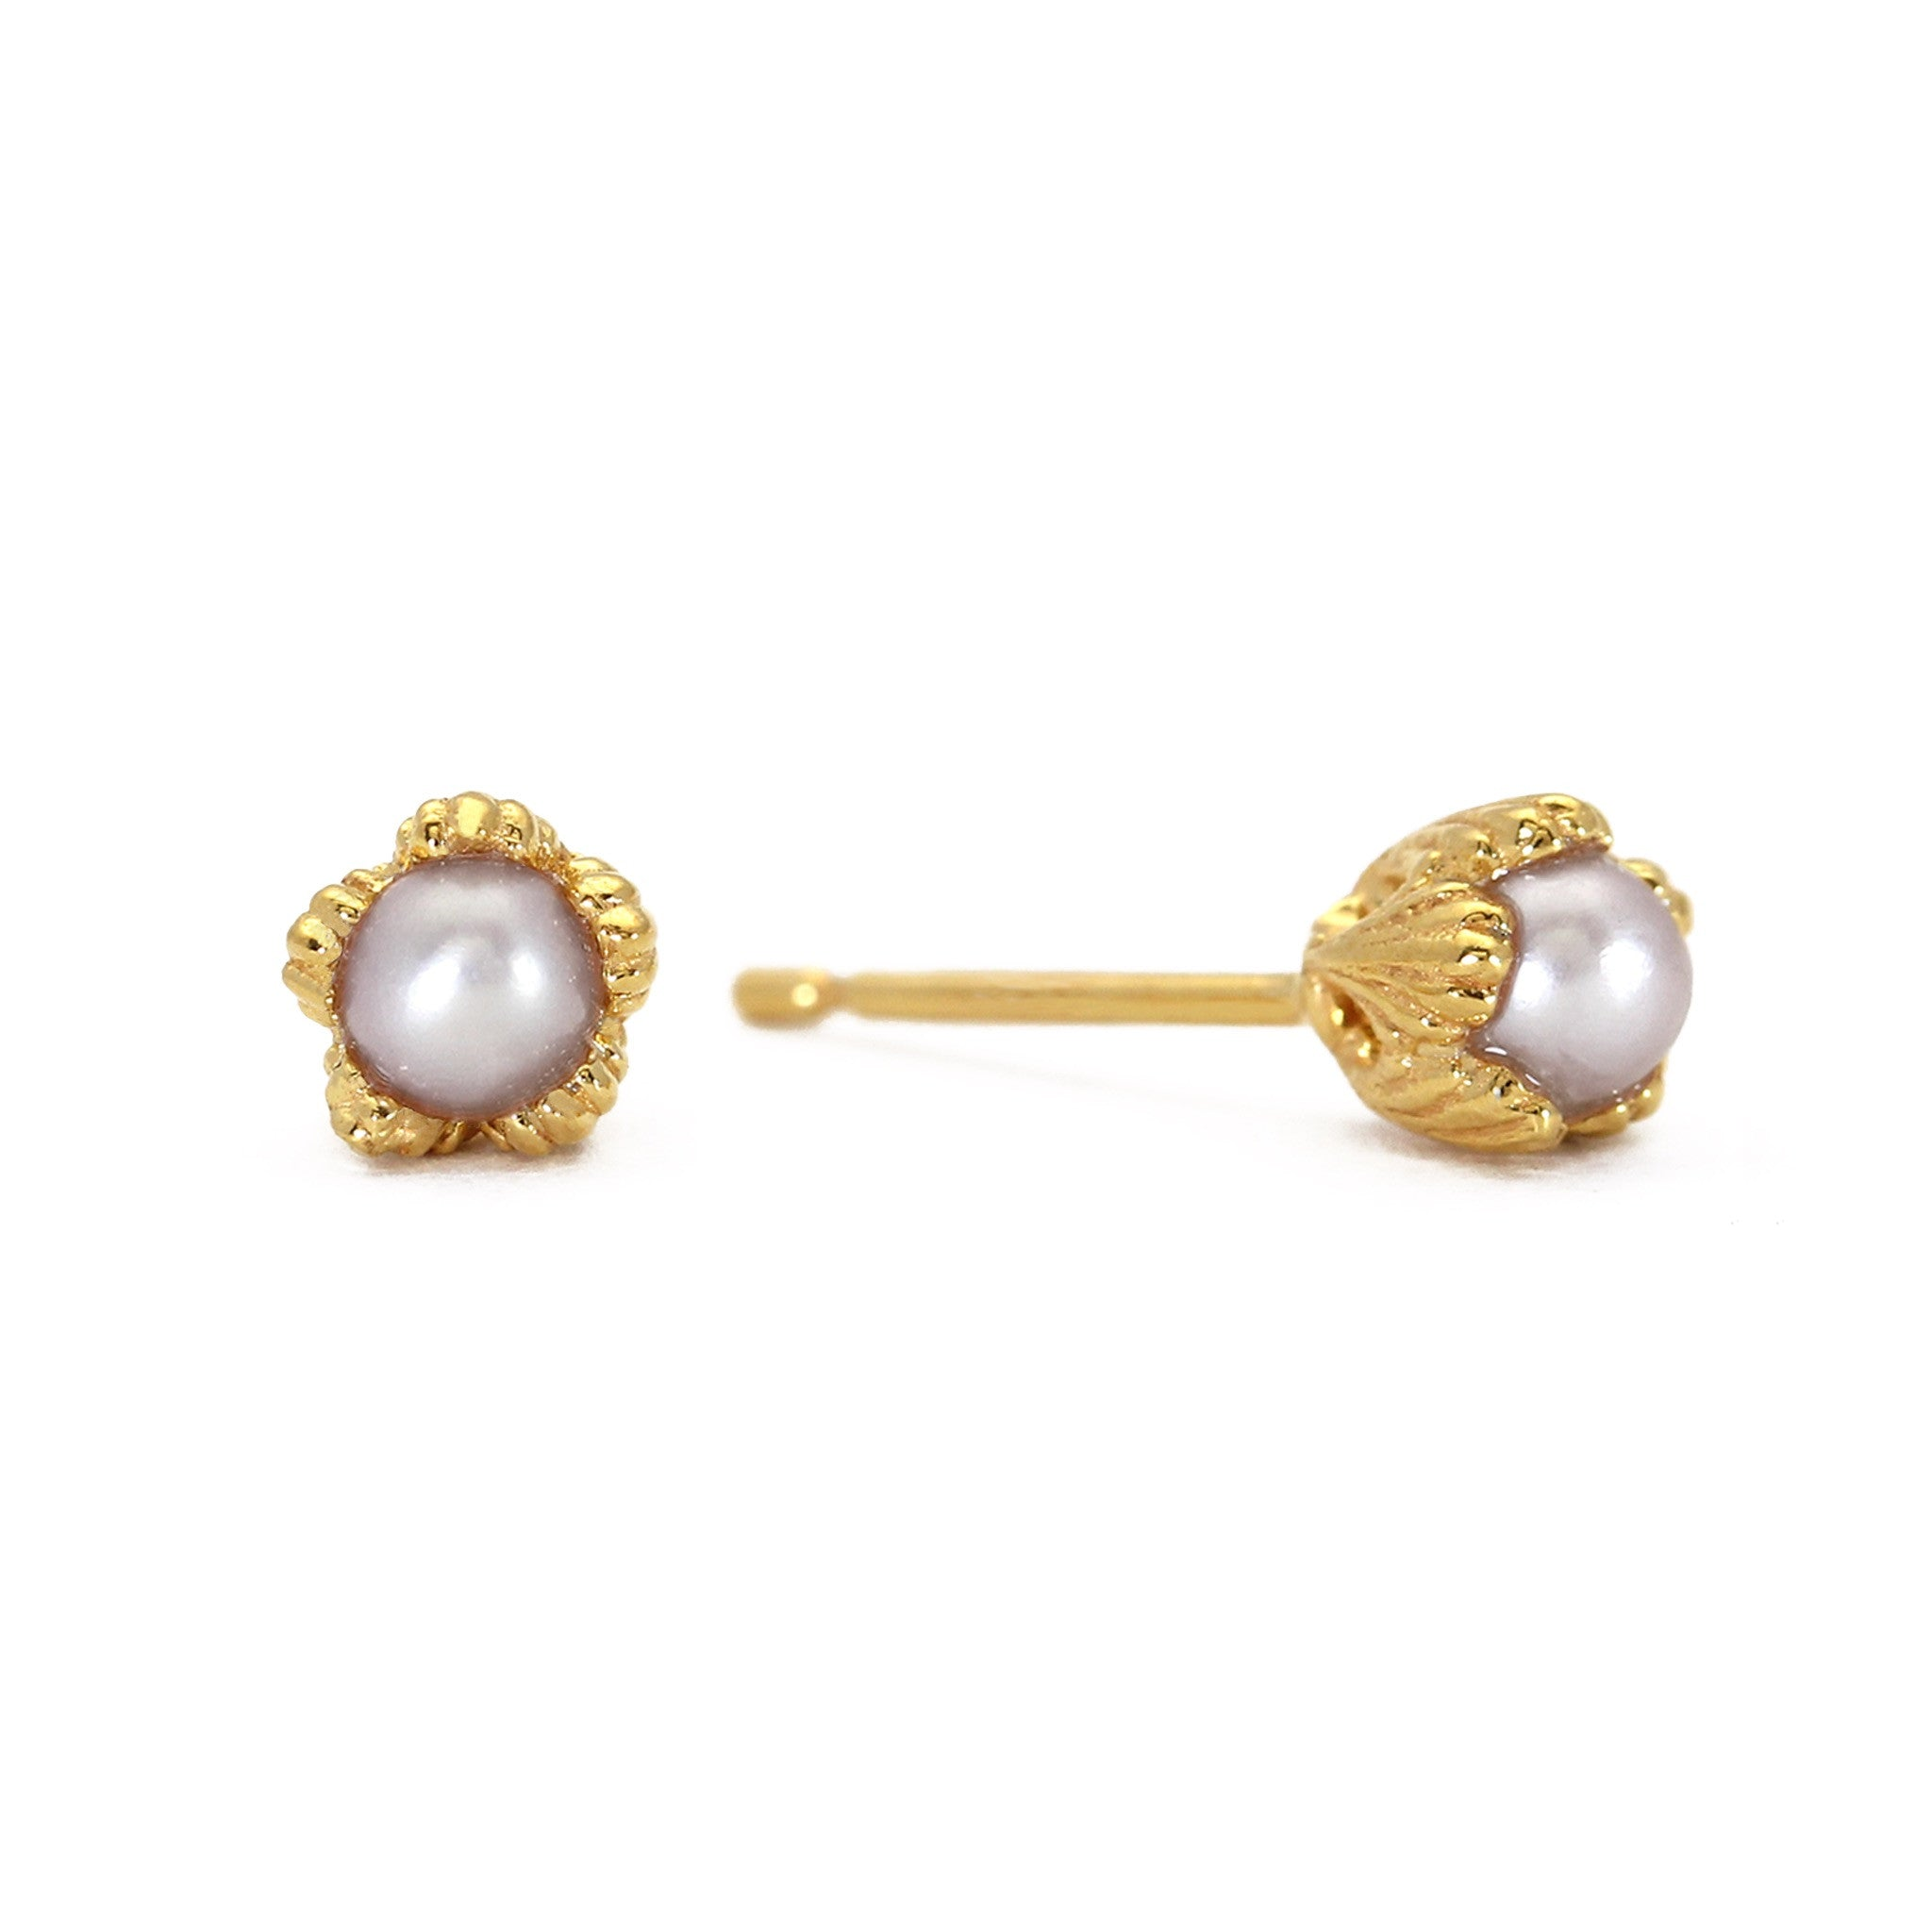 ekul the pearl customised your taste pearls anita can to have suit stud silver earrings you earring be gold or products sterling